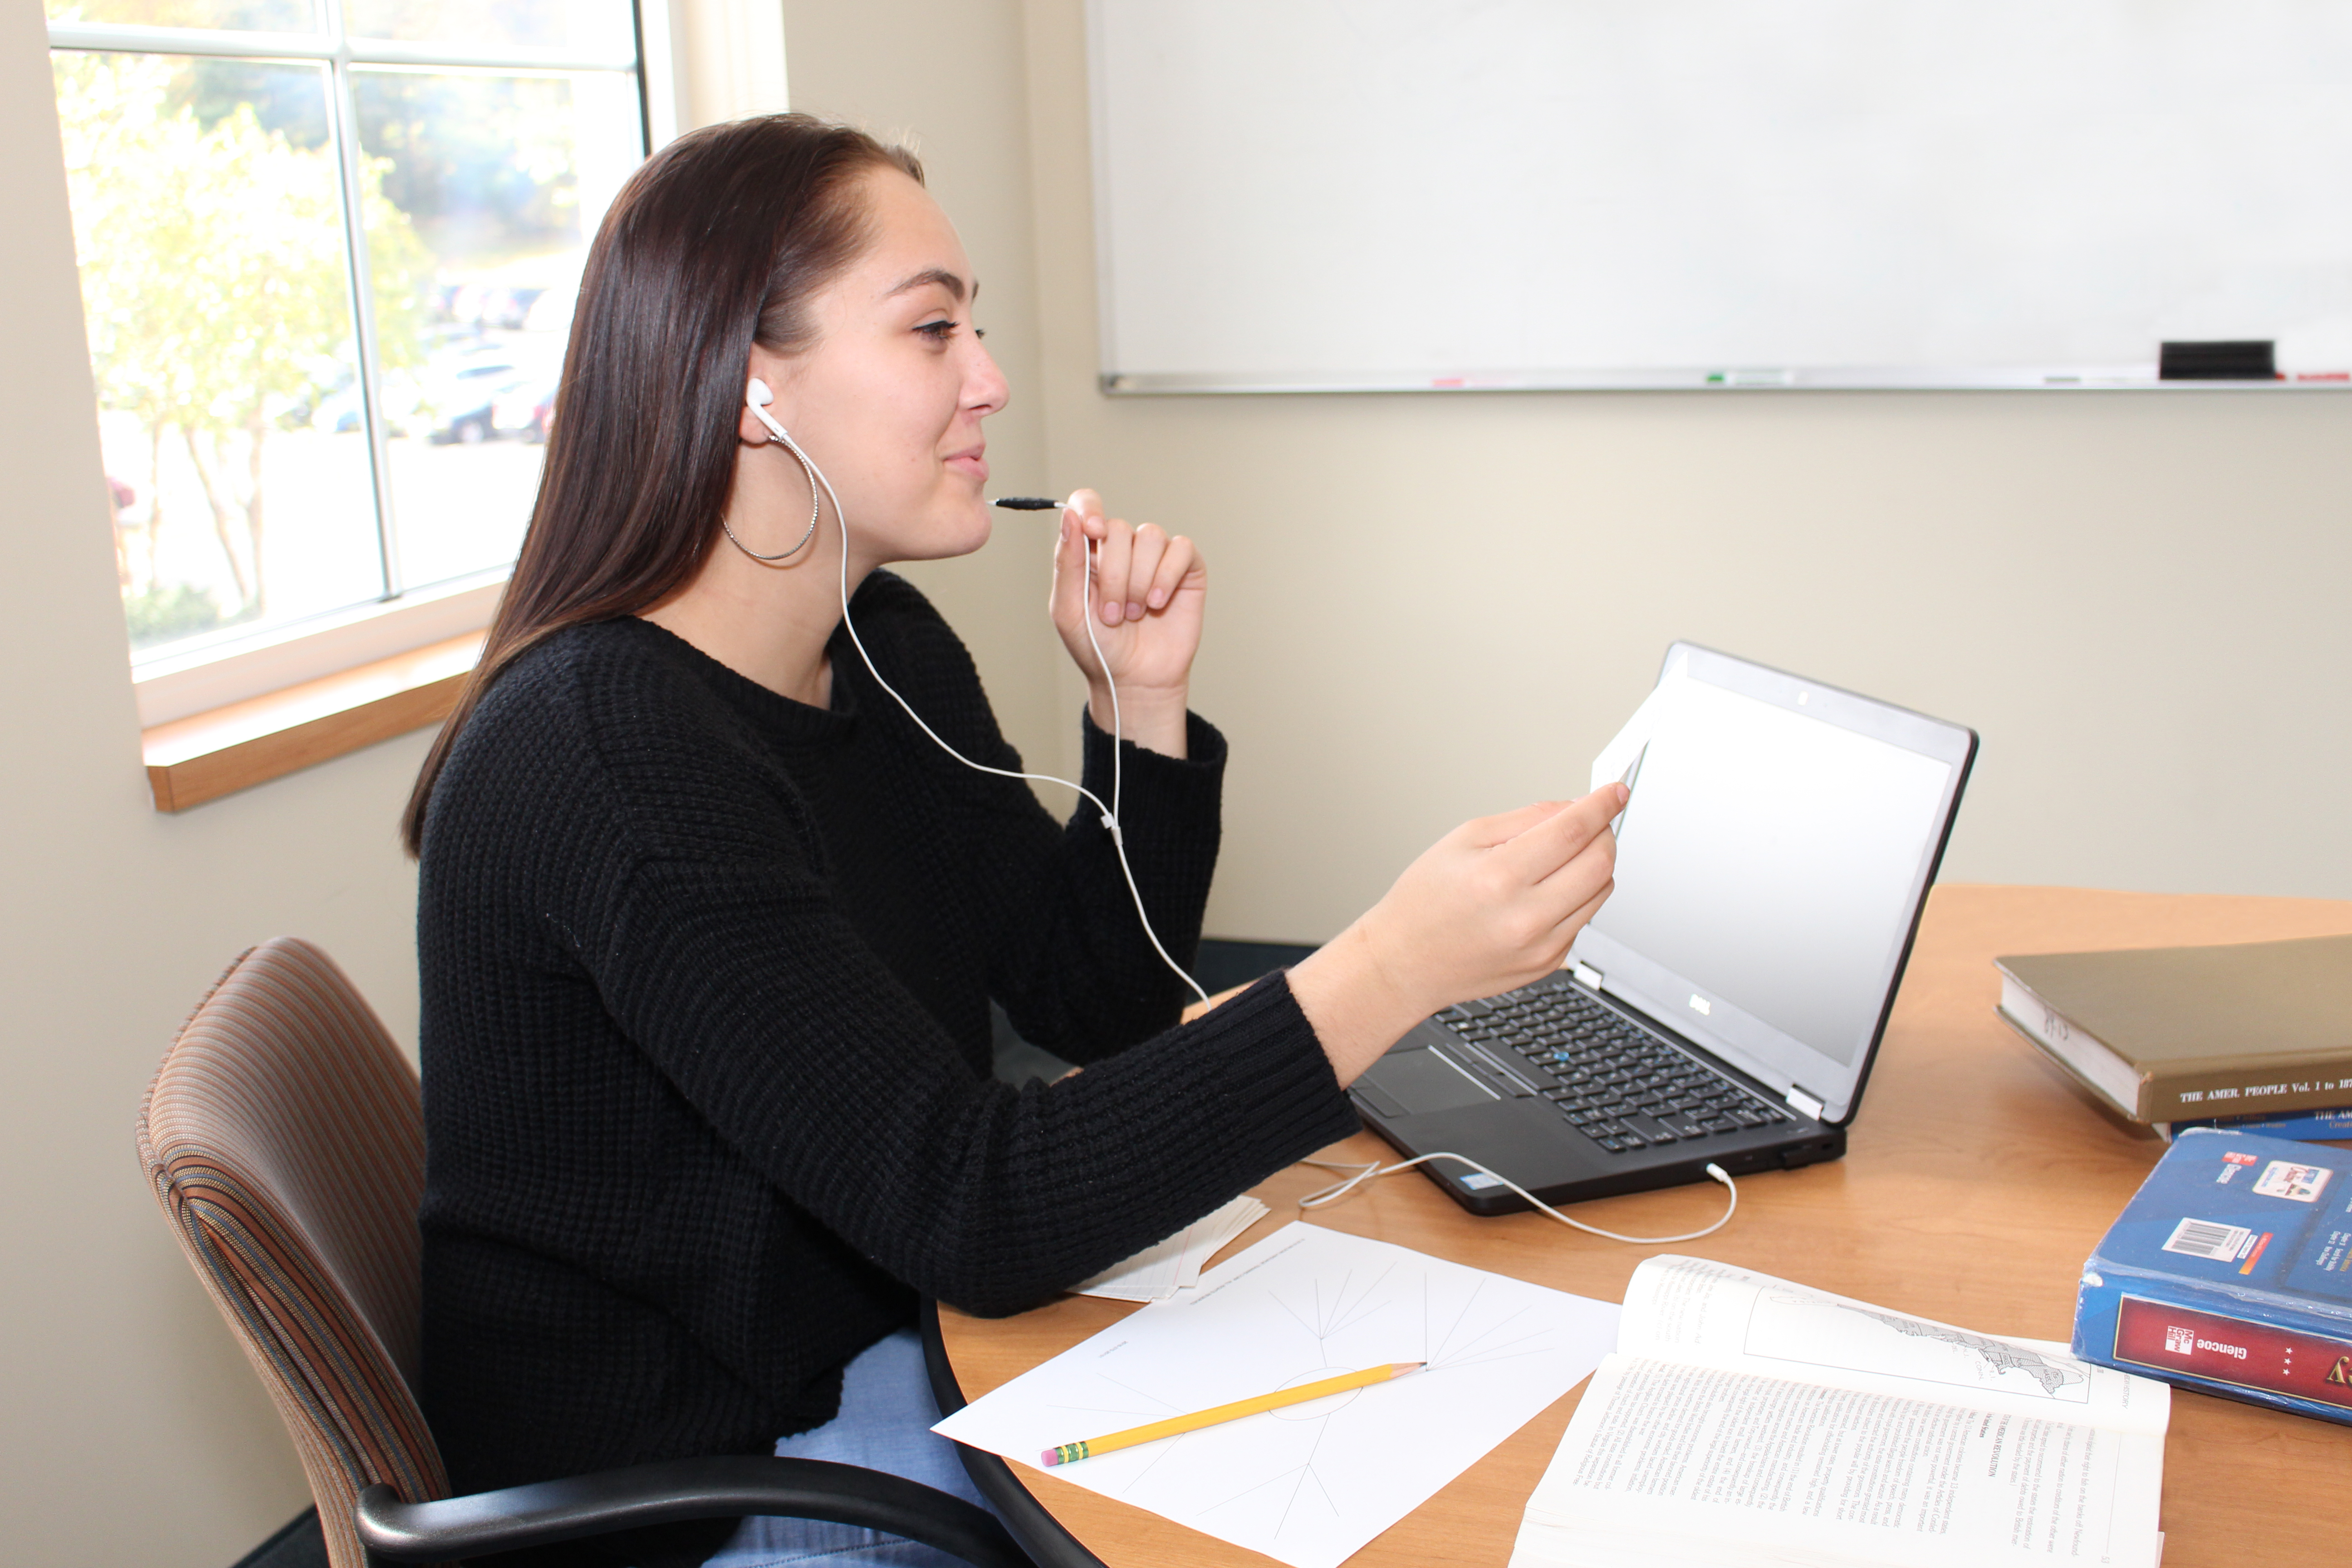 Female student learning remotely